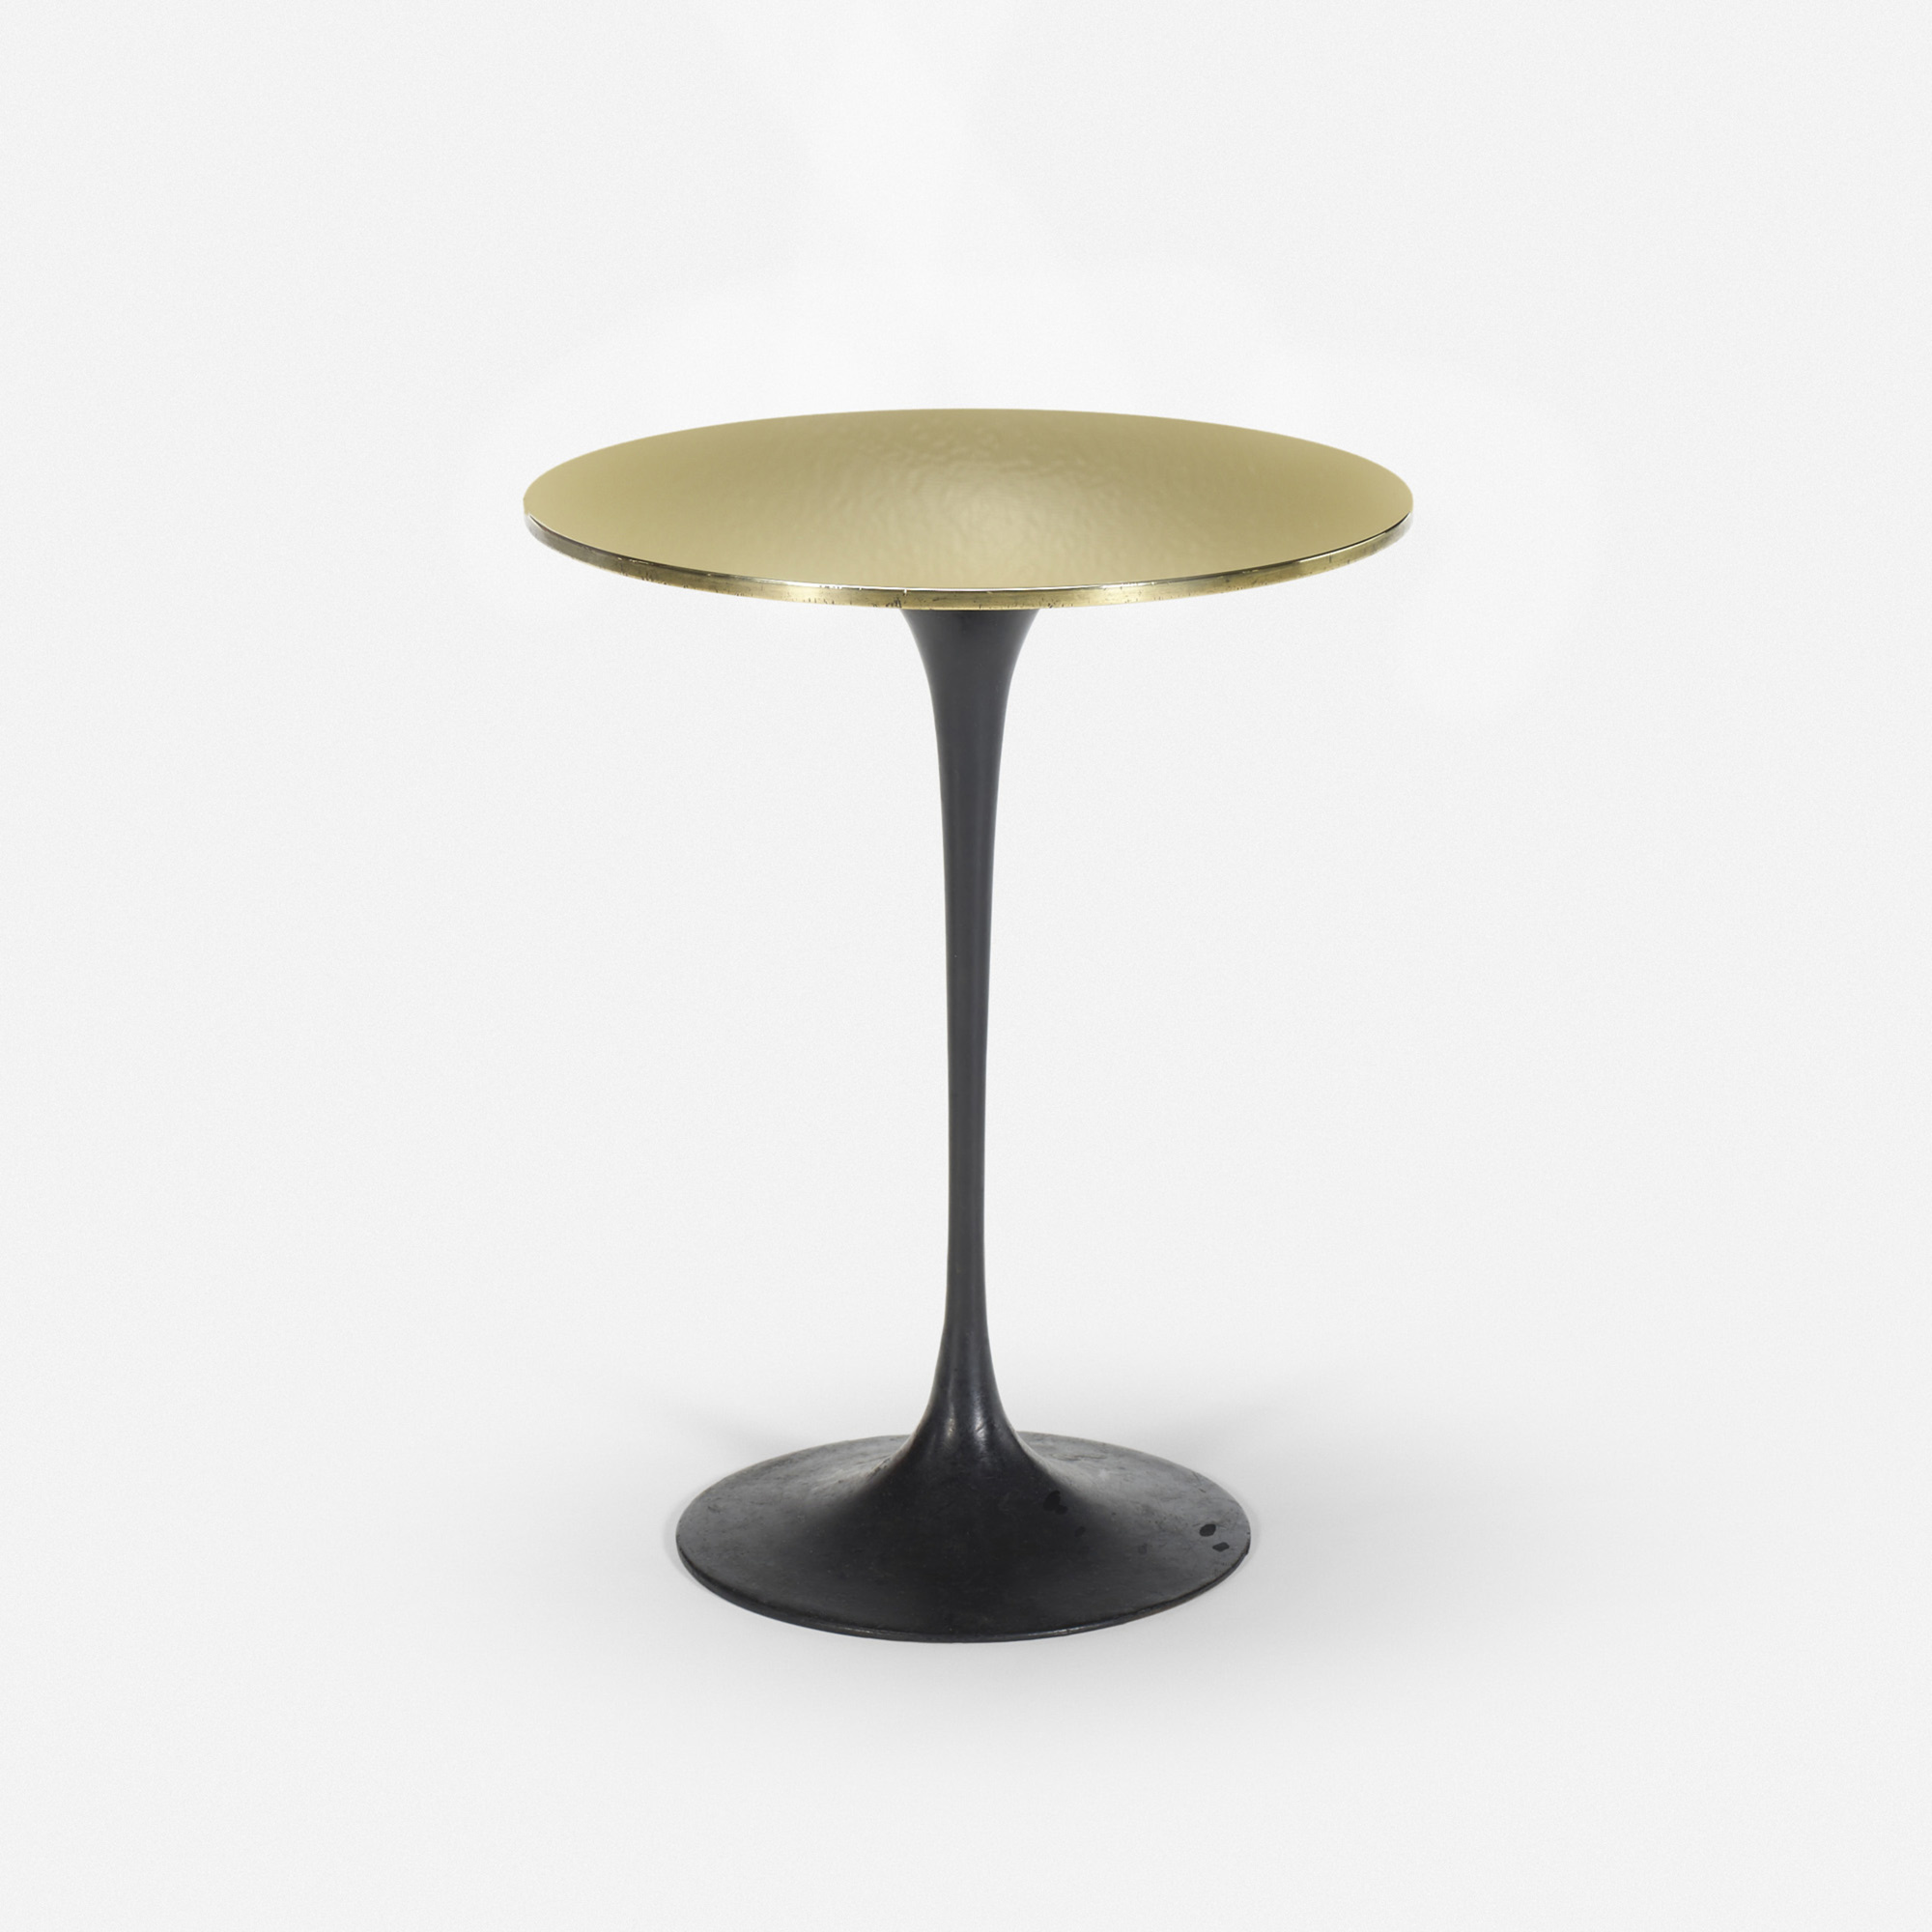 127: Eero Saarinen / Custom Tulip table from the bar of the Grill Room (1 of 1)